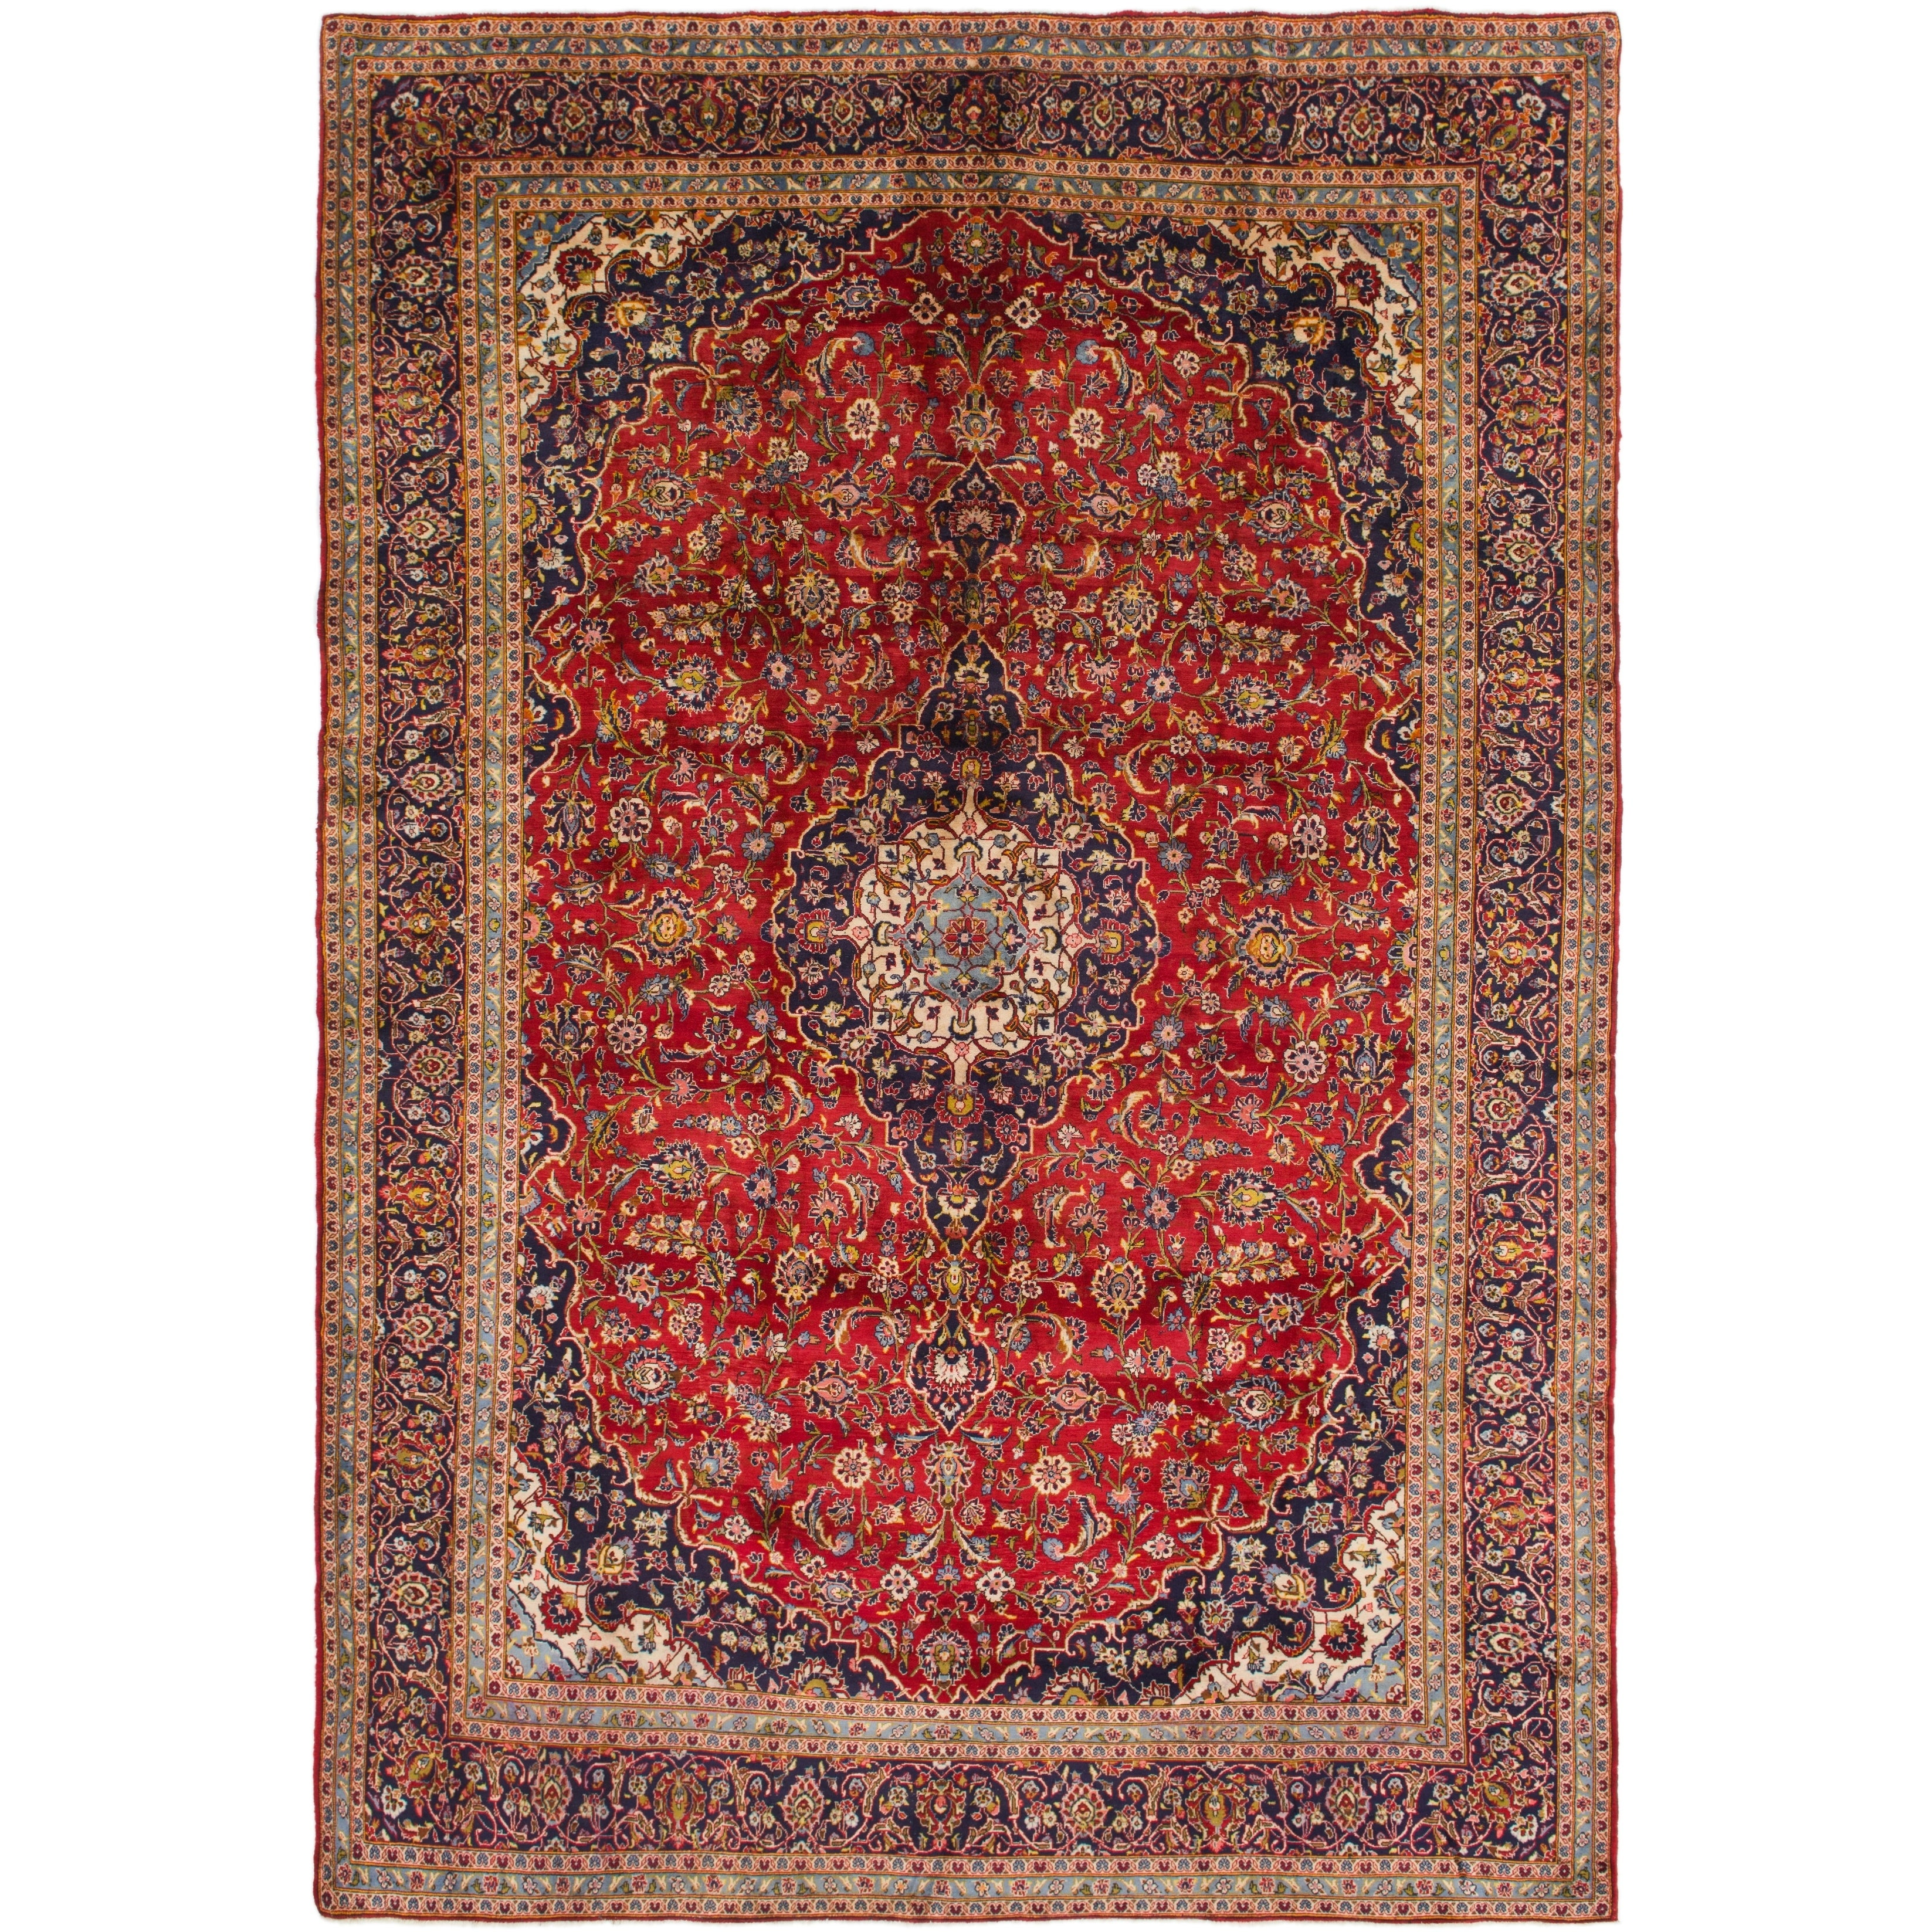 Hand Knotted Kashan Semi Antique Wool Area Rug - 9 10 x 14 3 (Red - 9 10 x 14 3)